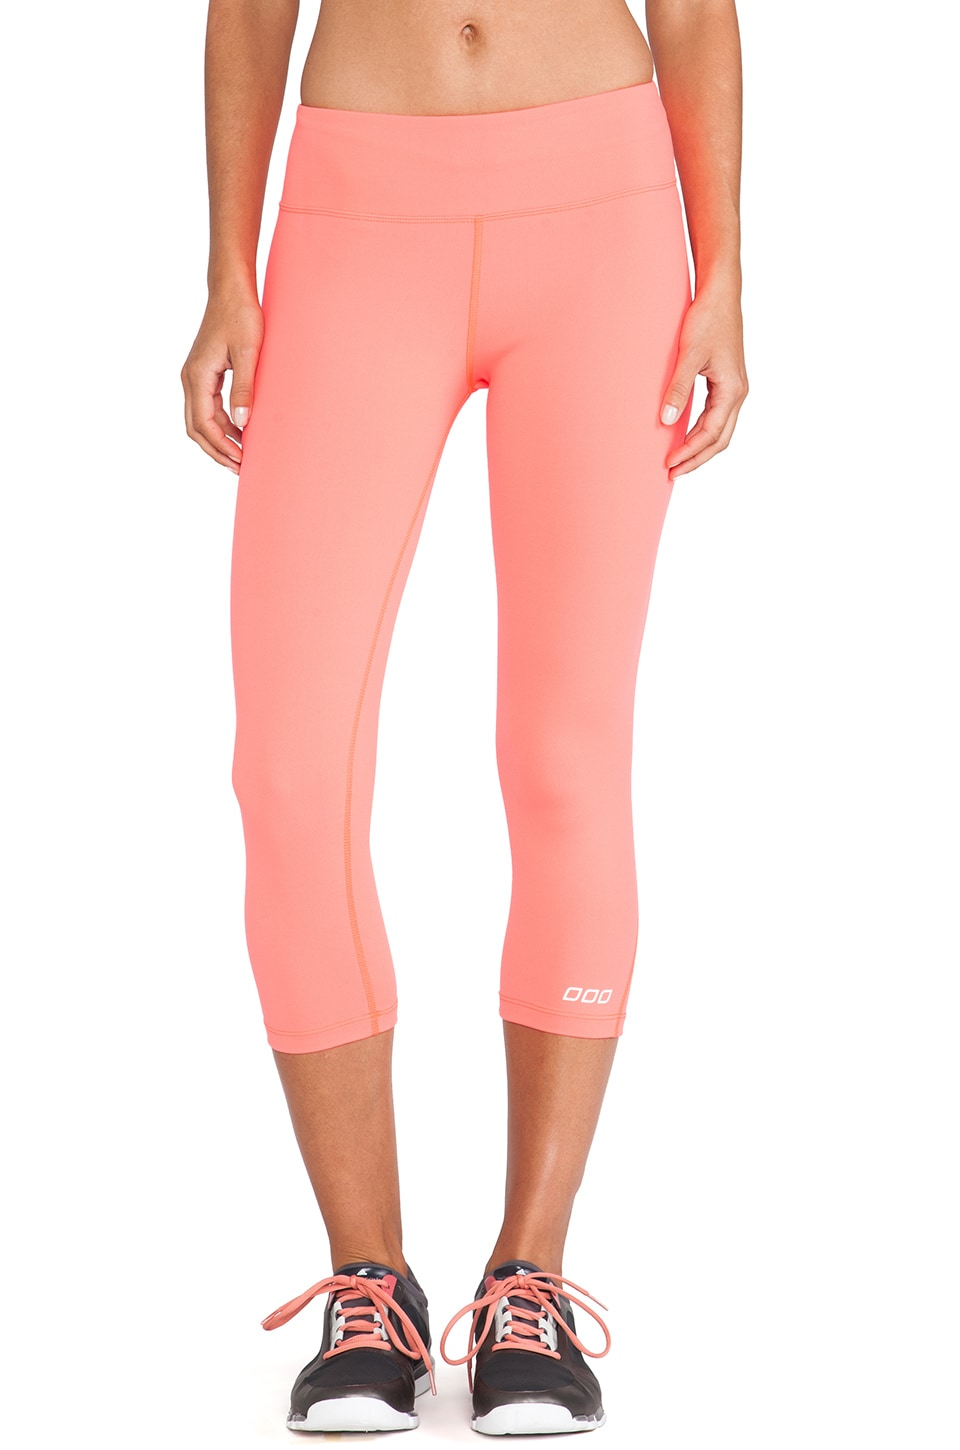 Lorna Jane Chromatic 7/8 Length Tight in Fluro Orange